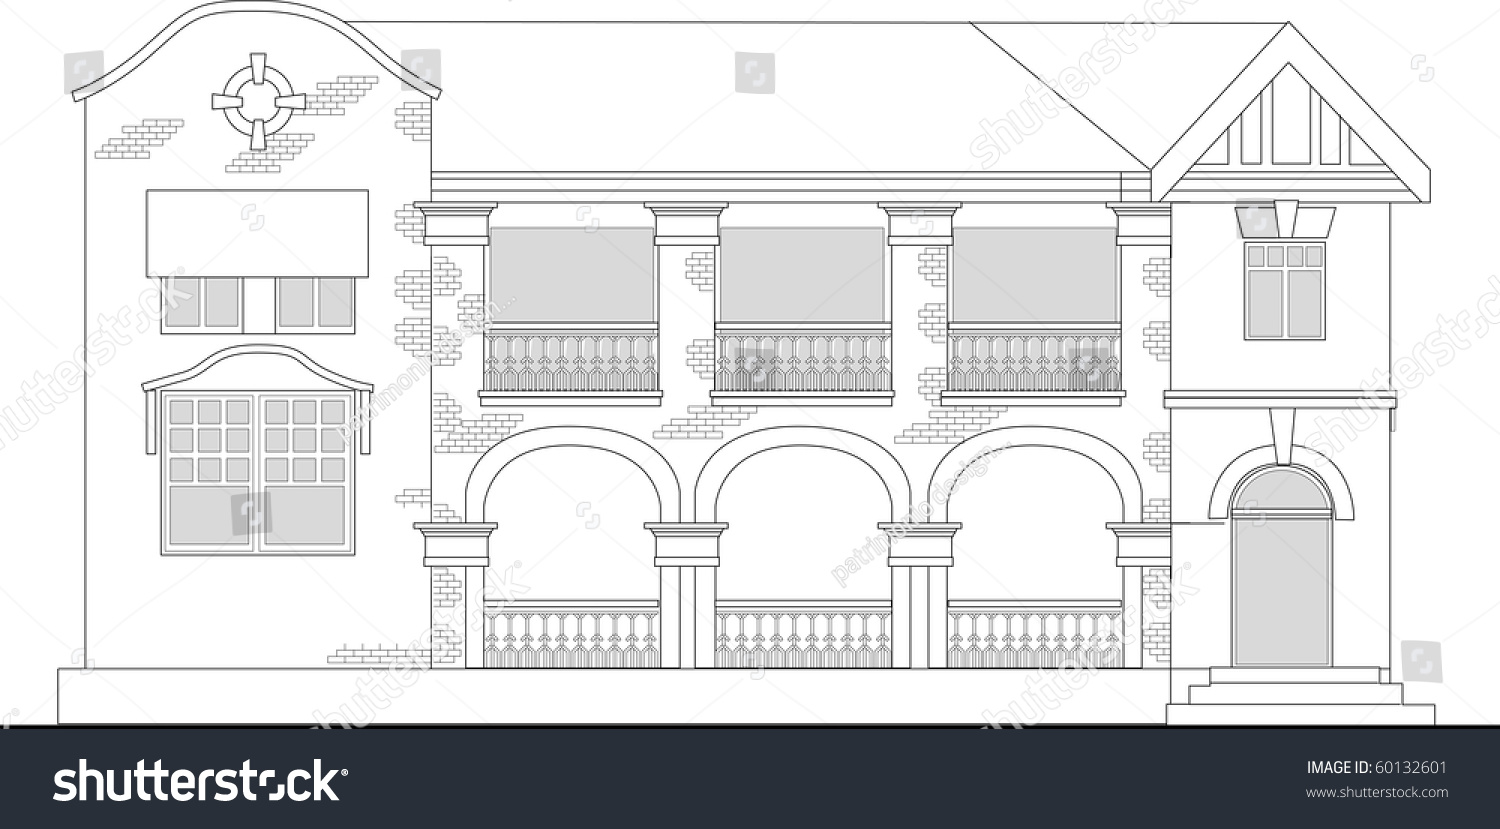 Commercial Building Elevation Drawing : Line drawing illustration commercial office building stock